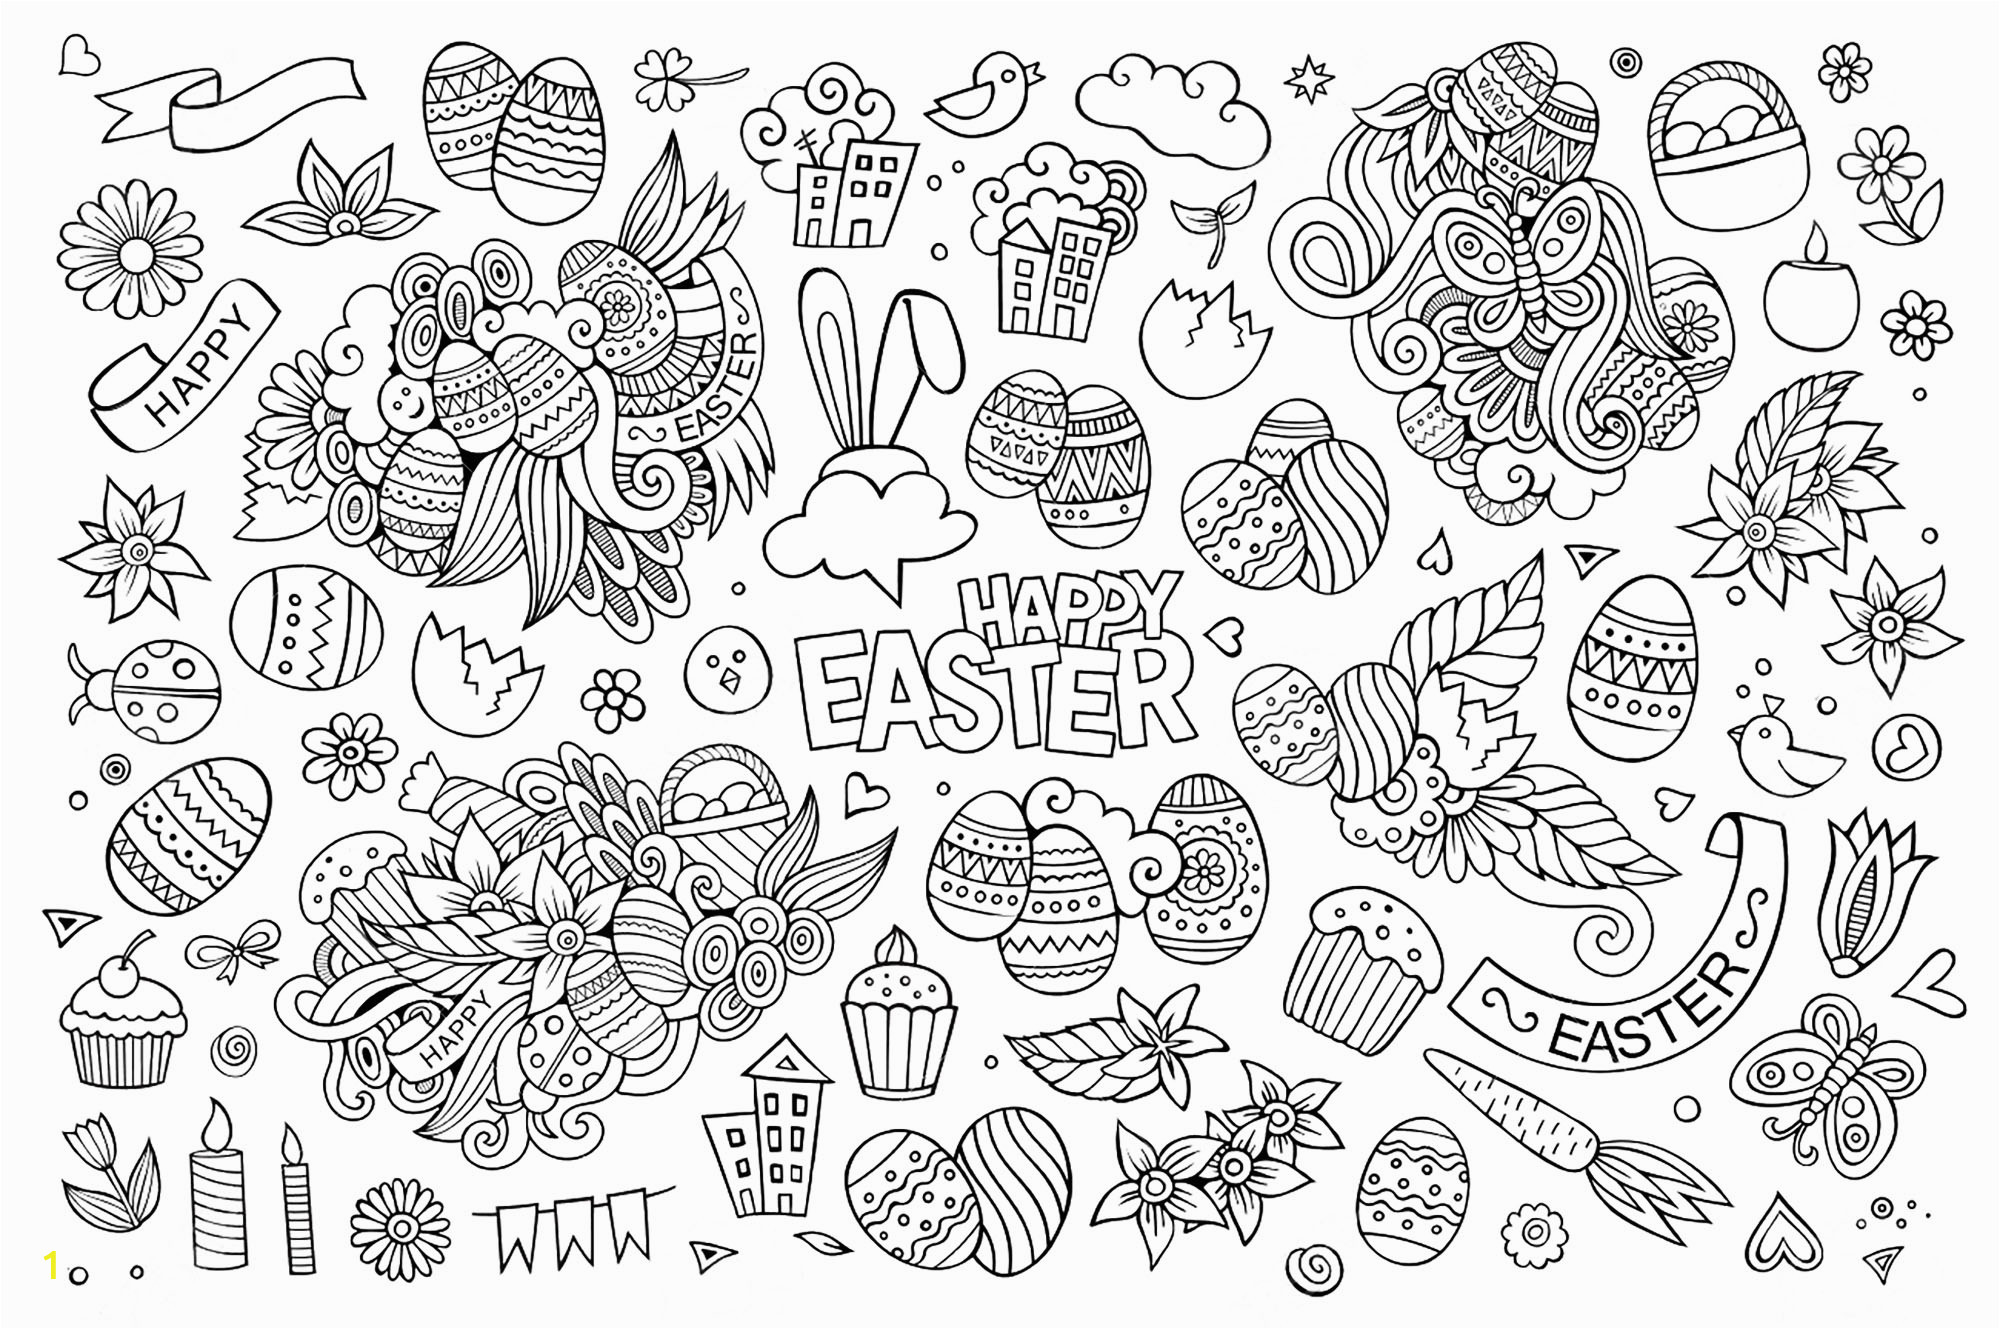 Religious Holiday Coloring Pages Easter Coloring Pages – Coloringcks